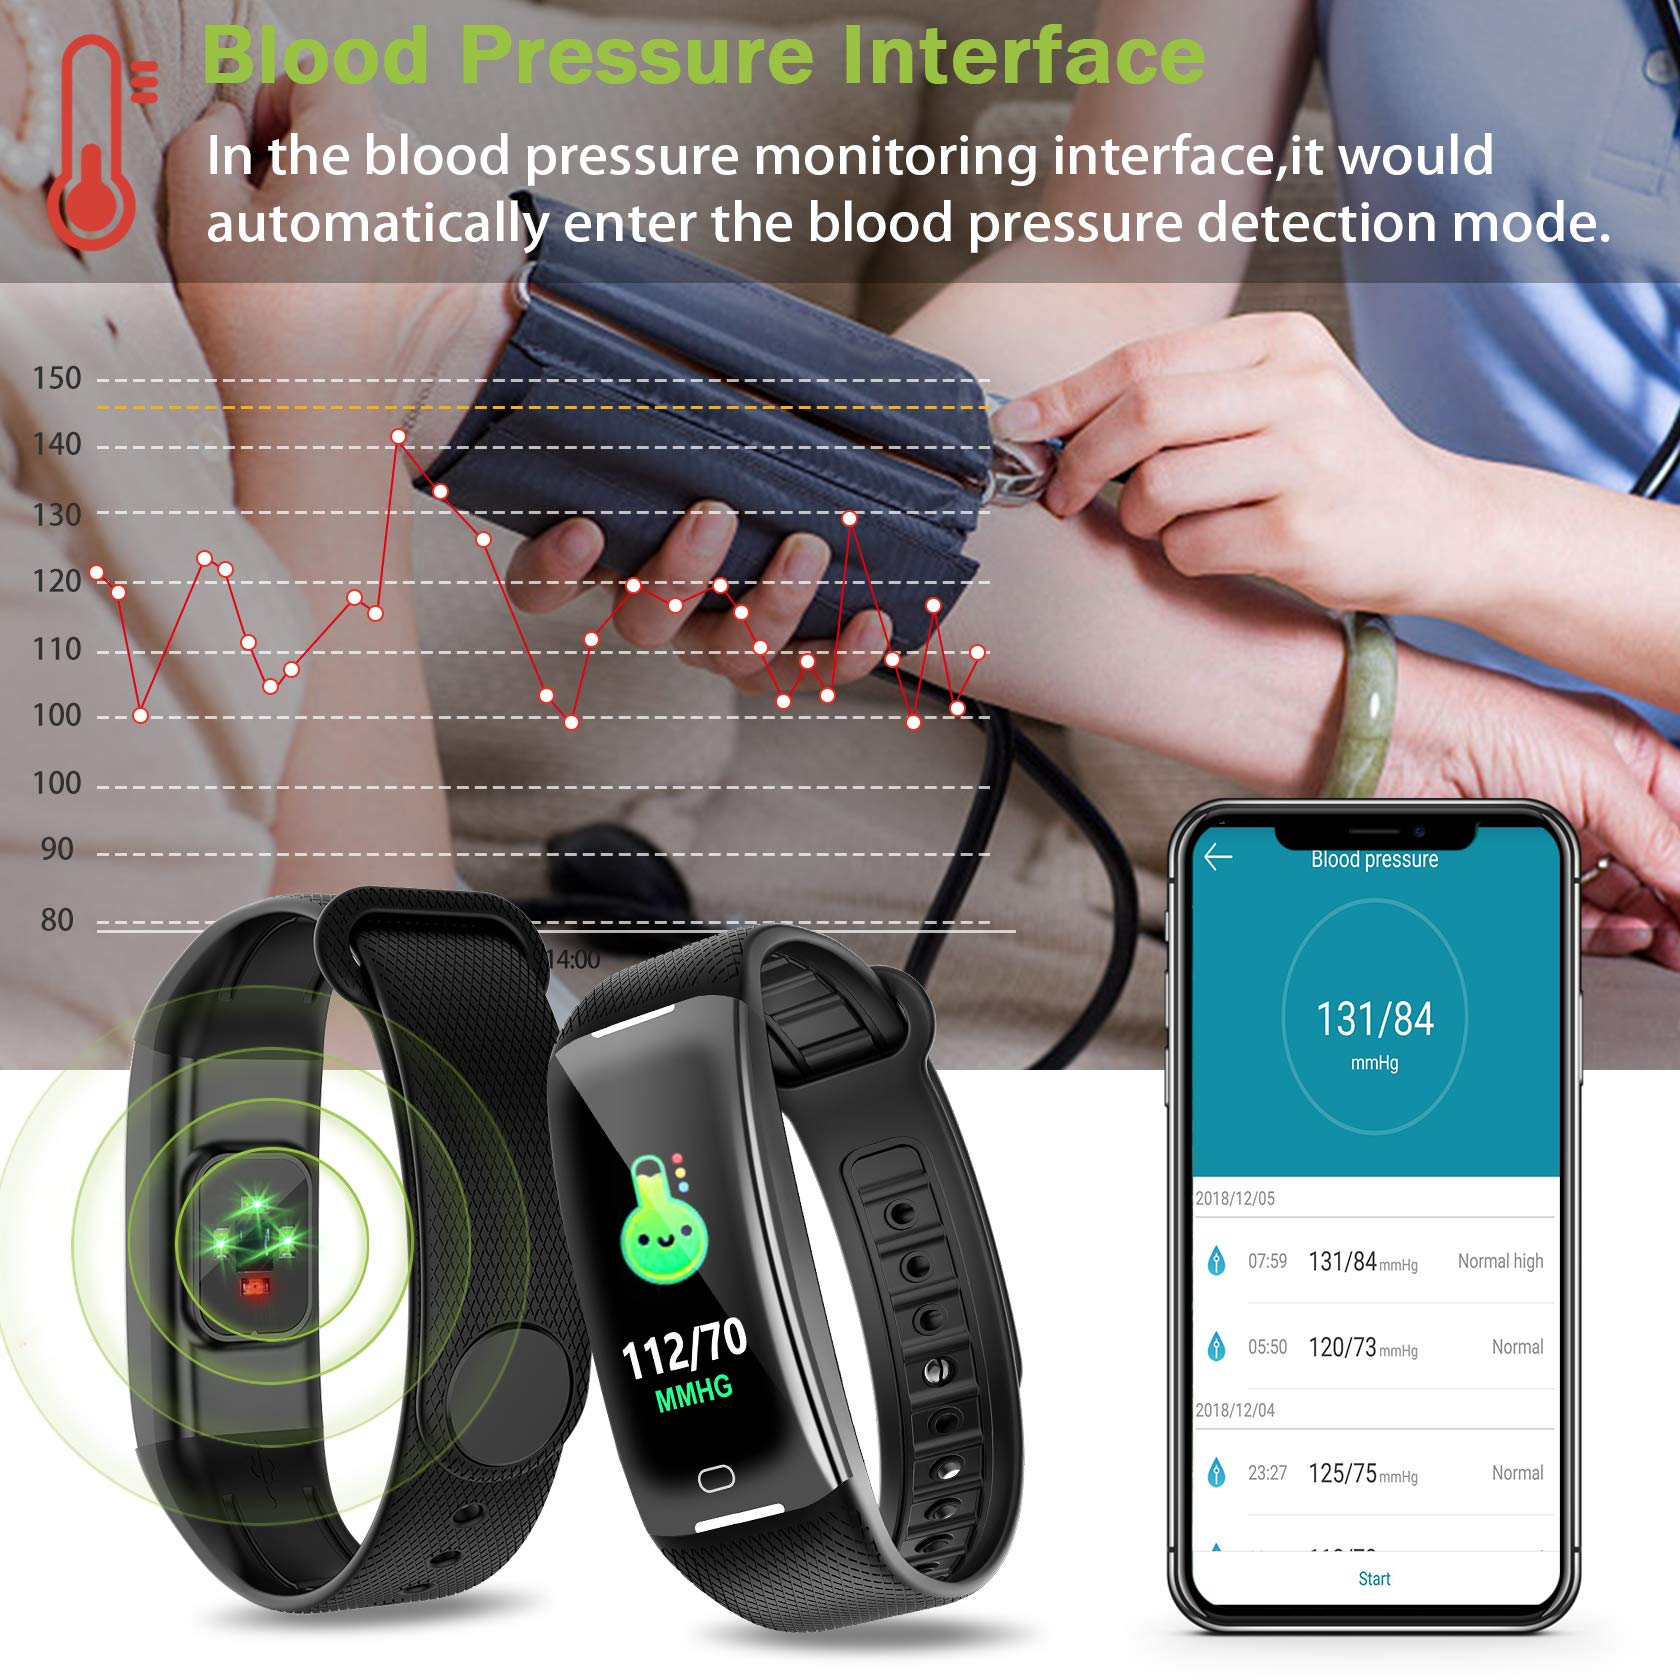 KARSEEN Fitness Tracker Smart Watch H3 Color Screen for Blood Pressure and Heart Rate Monitor Phone Enabled IP67 Waterproof Pedometer Sports Watch for Men (Black) by KARSEEN (Image #4)